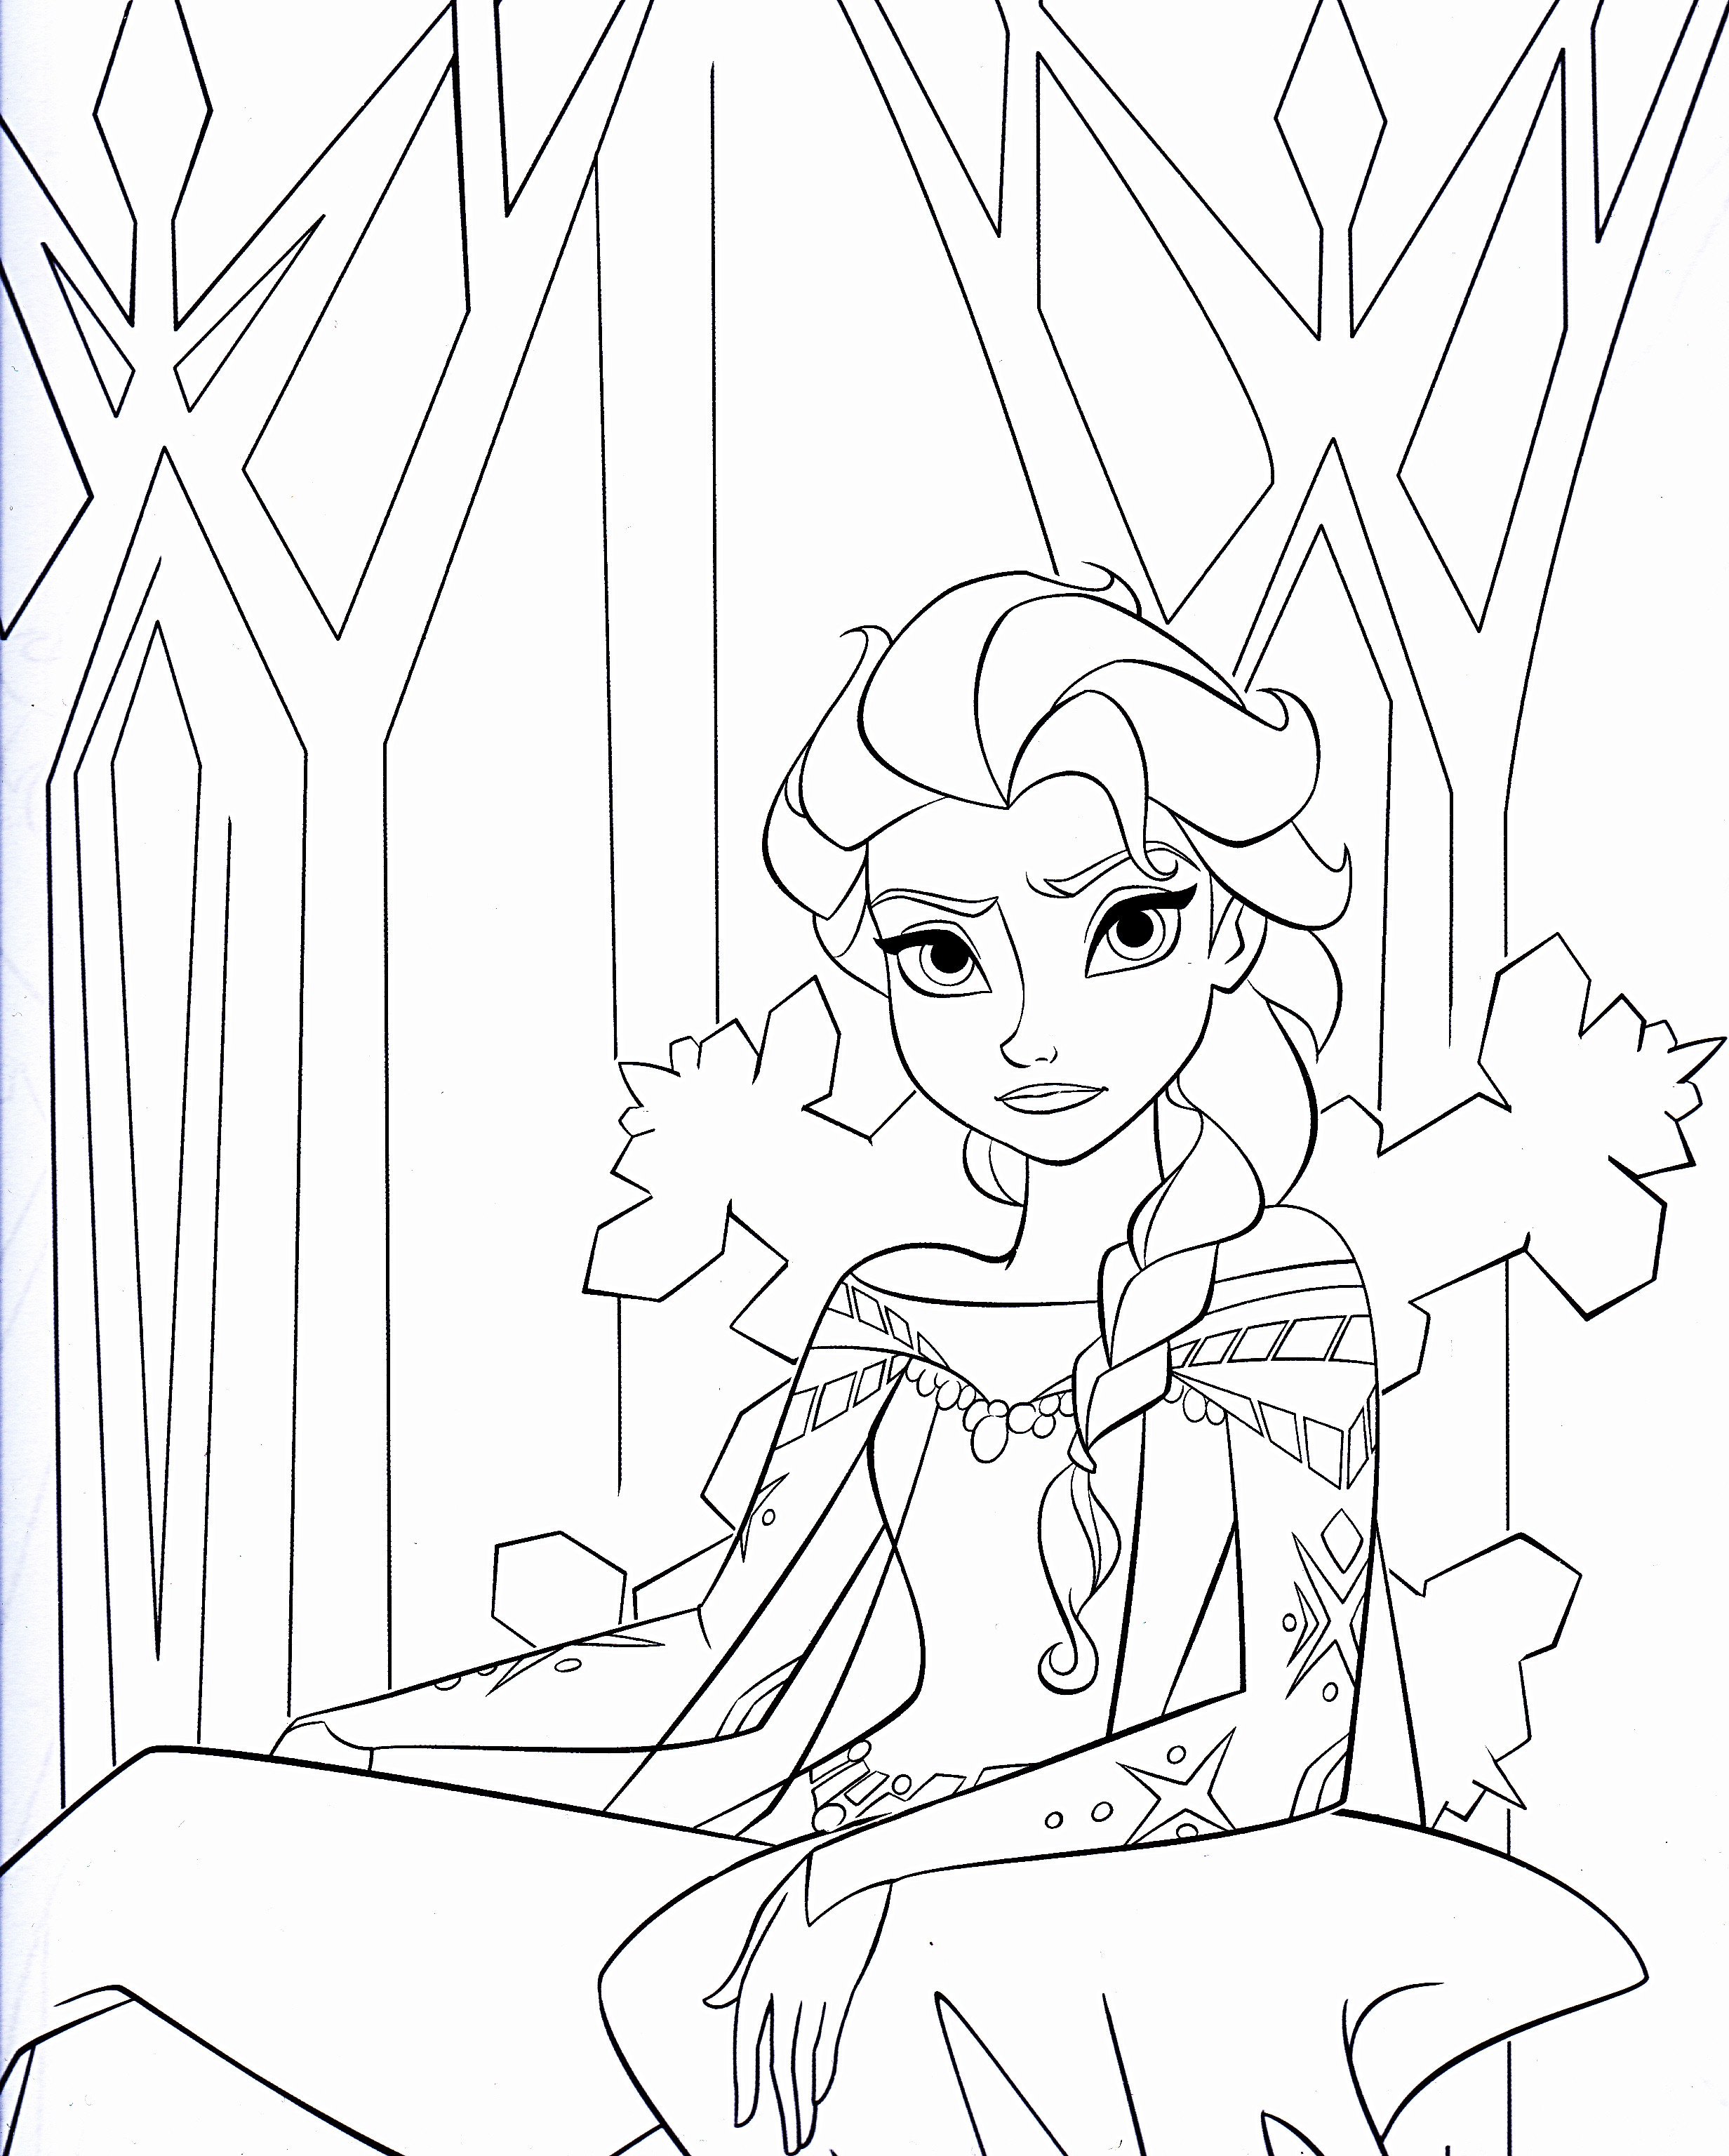 Disney Cha Nnel Coloring Sheets For Girls  Walt Disney Coloring Pages Bestofcoloring